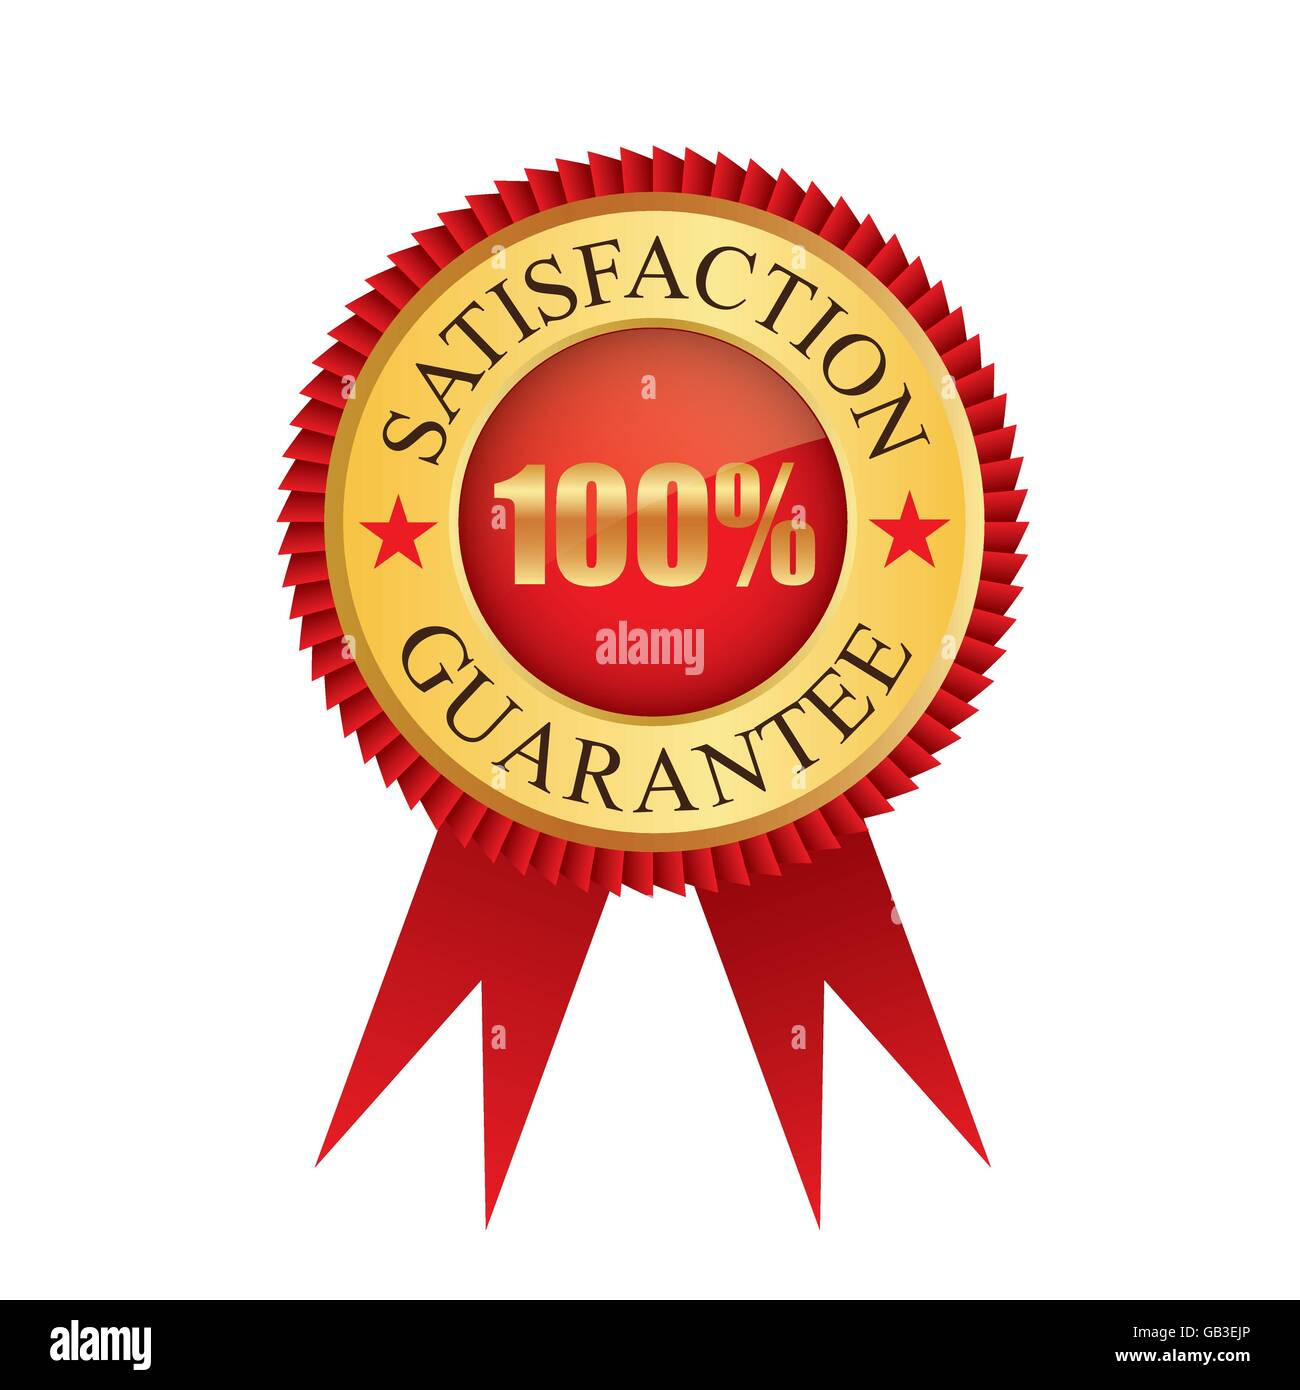 One hundred percent satisfaction guarantee gold badge icon logo vector graphic design - Stock Vector